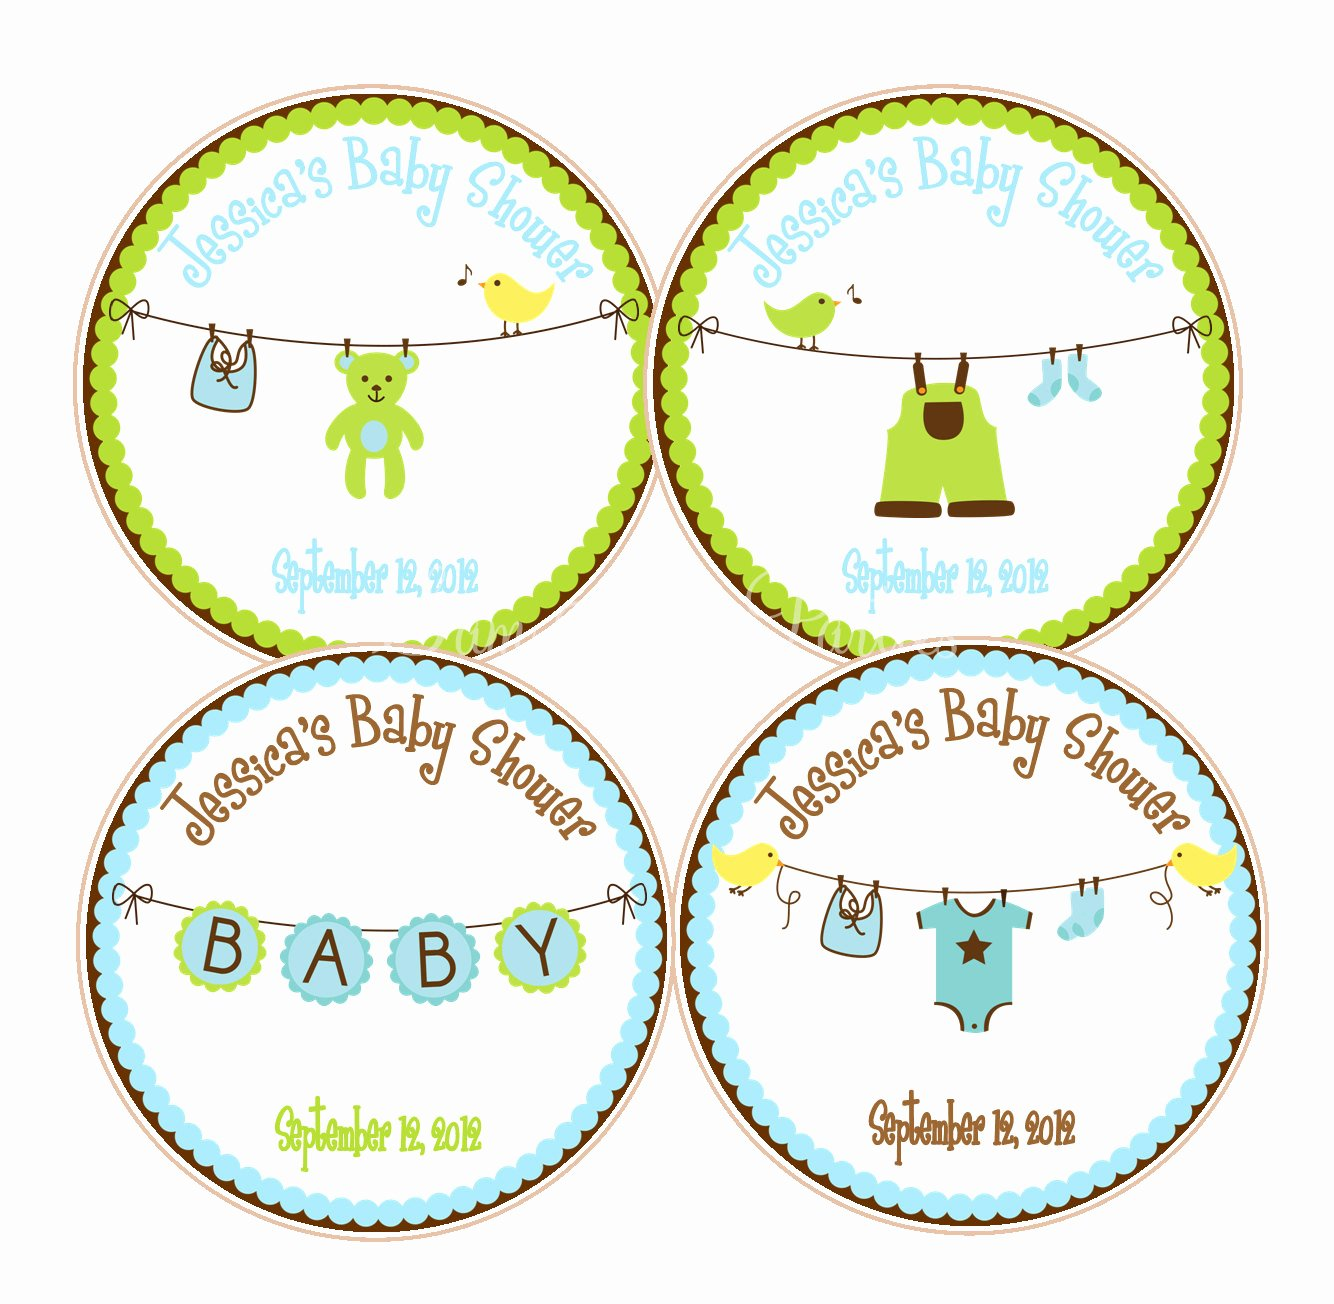 Baby Shower Tags Printable Awesome Cute Boy Baby Shower Favor Tags Baby Showers or 1st Birthday